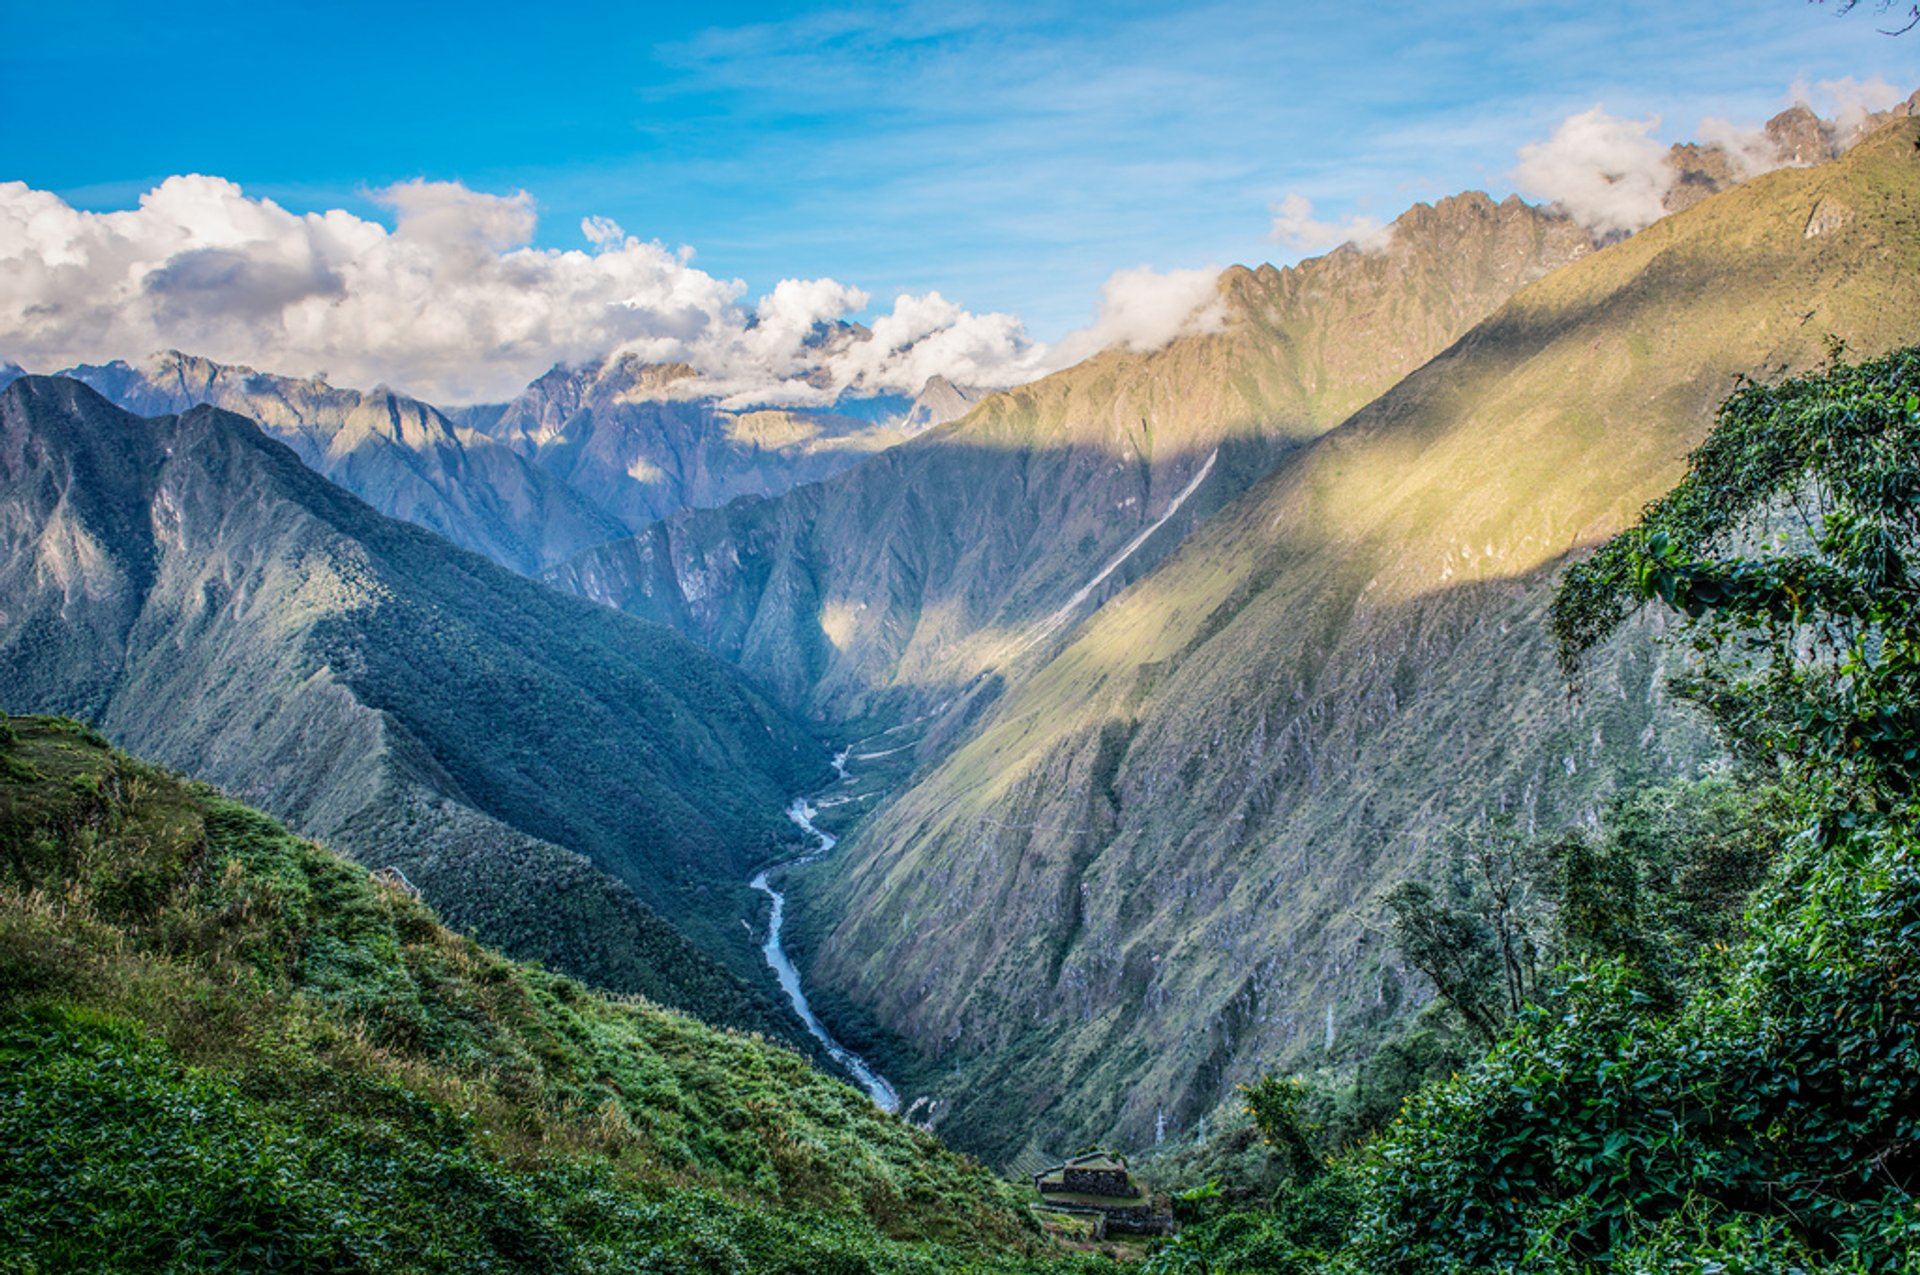 Dry Season in the Andes and Amazon in Peru 2020 - Best Time